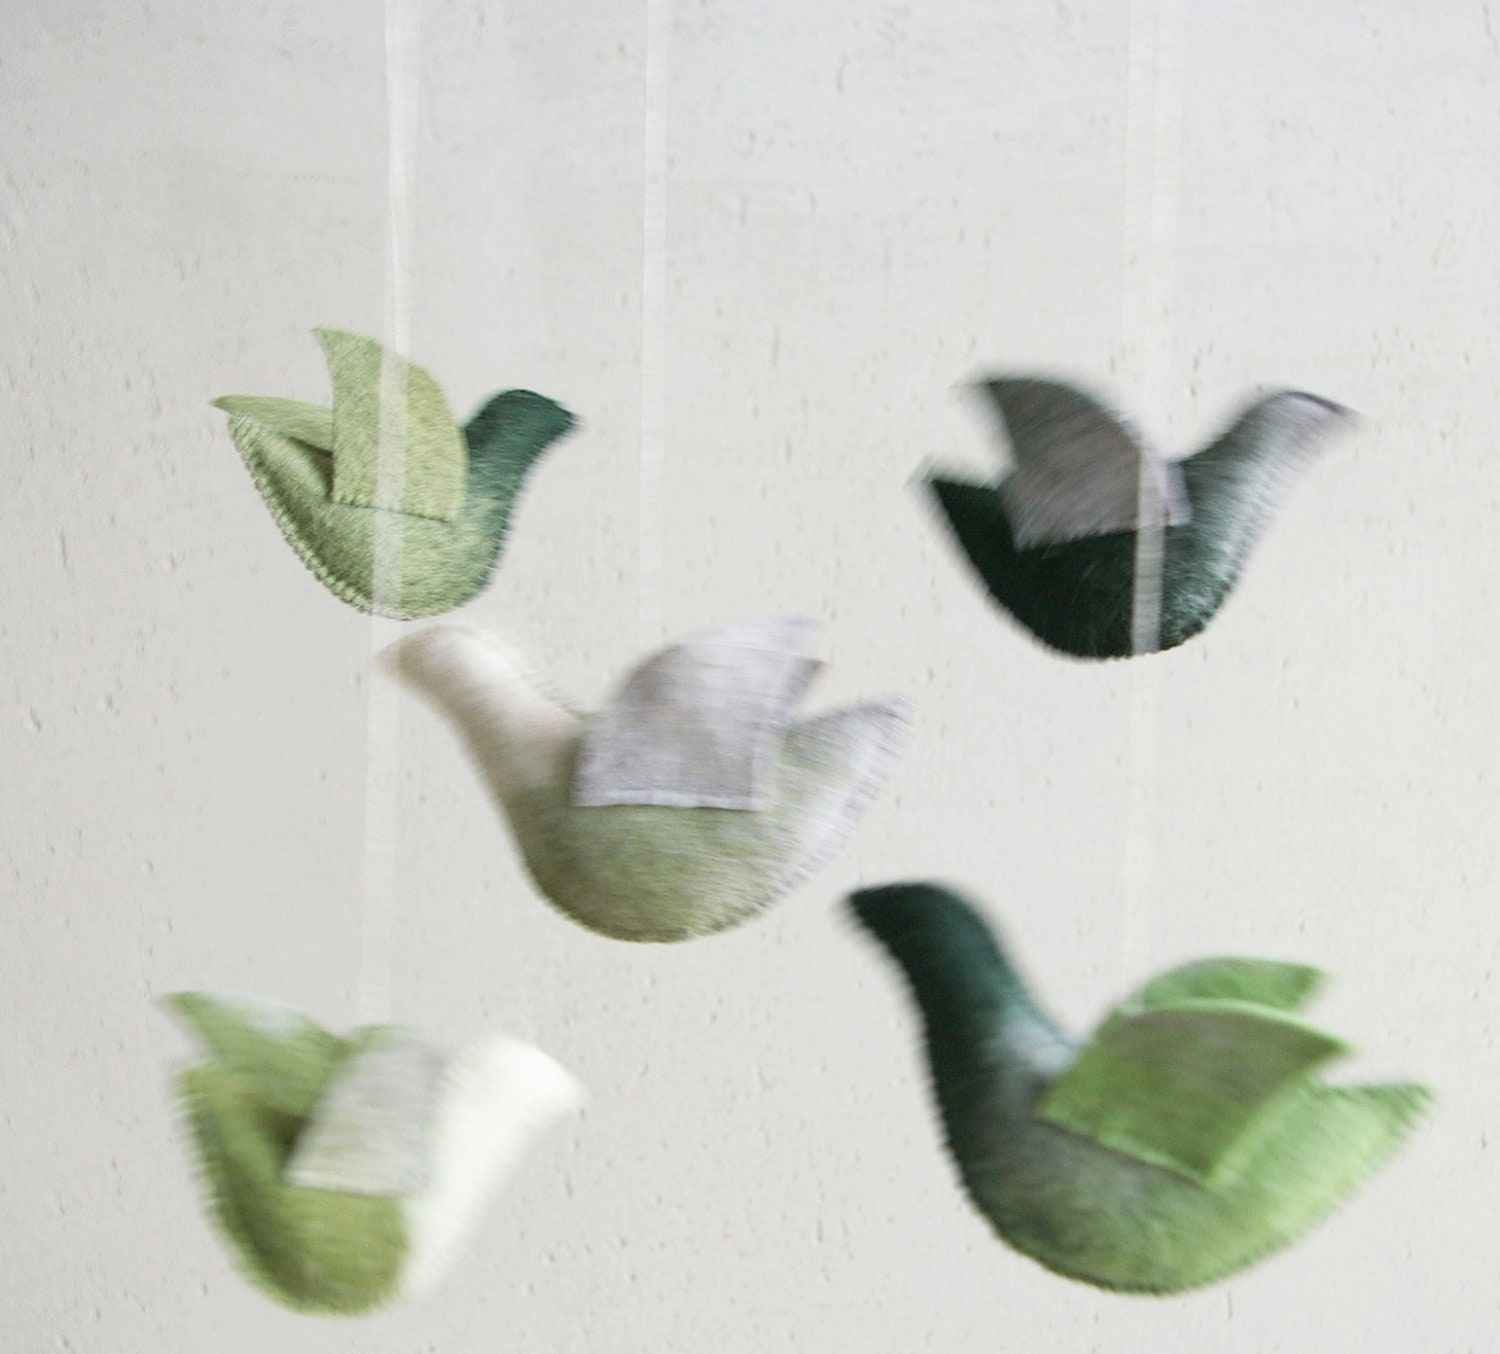 Baby crib mobile - nursery mobile - Birds mobile - GREEN WORLD - baby gift - pure eco - made to order - Patricija